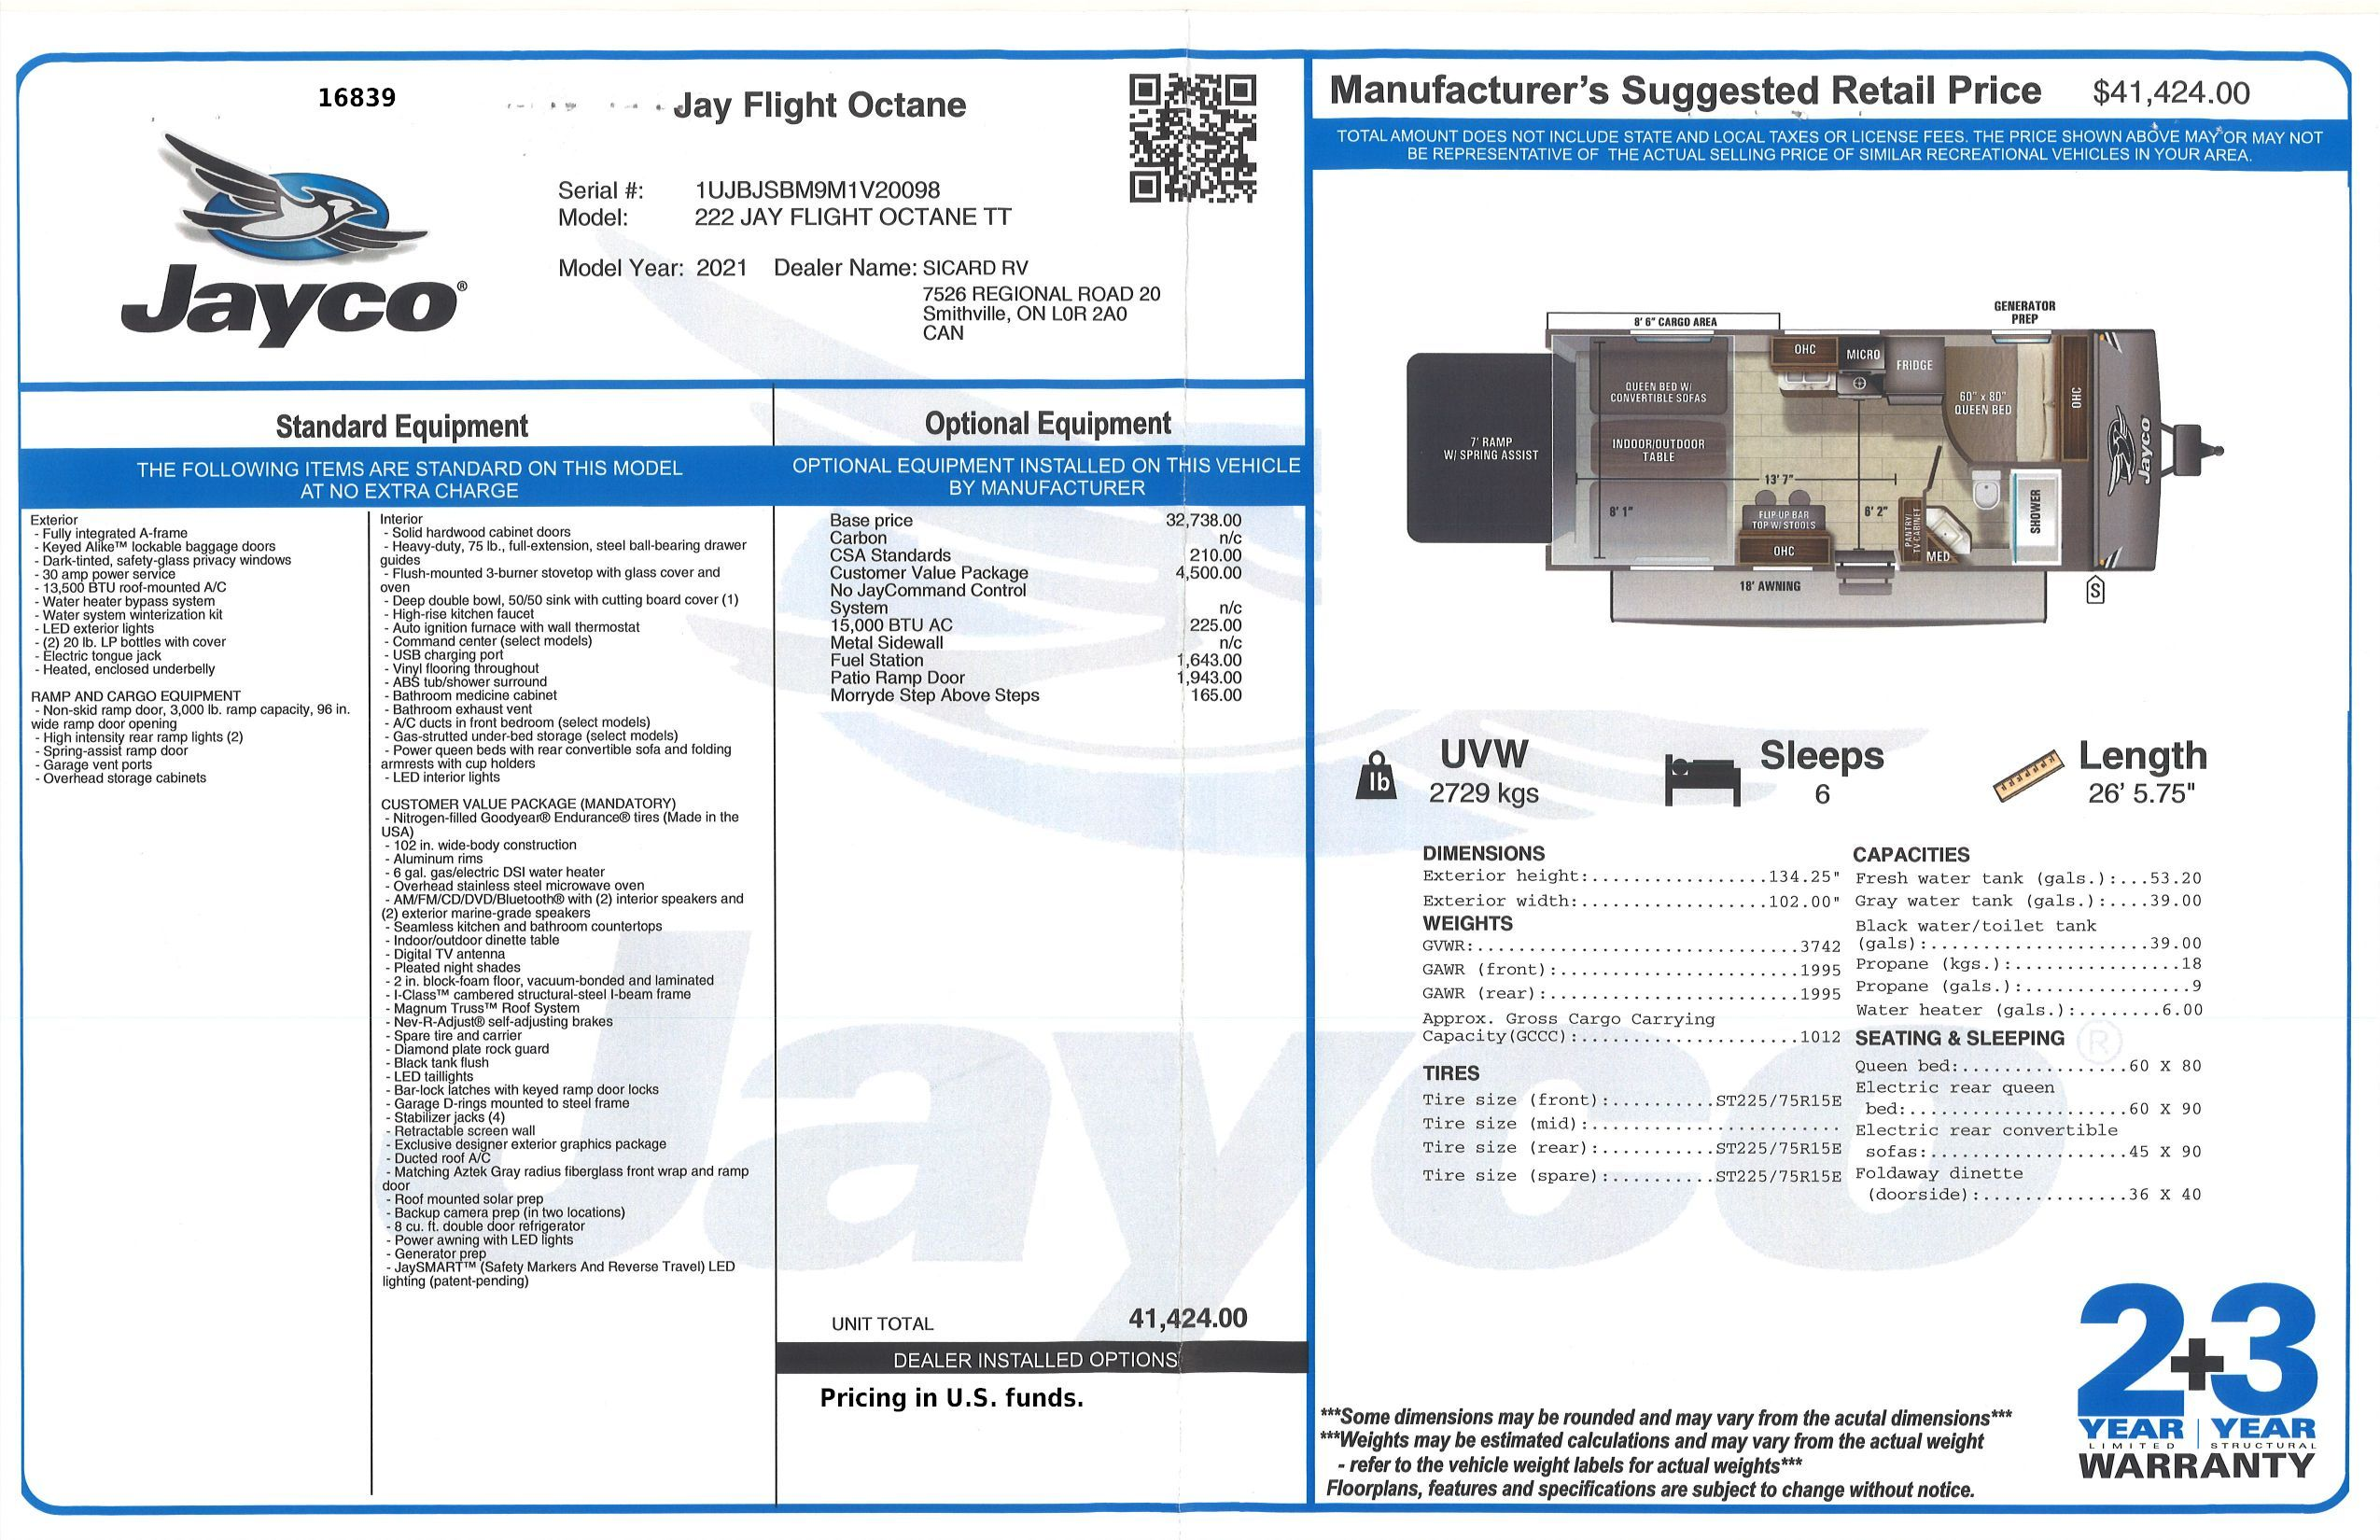 Buildsheet for 2021 JAYCO JAY FLIGHT OCTANE 222